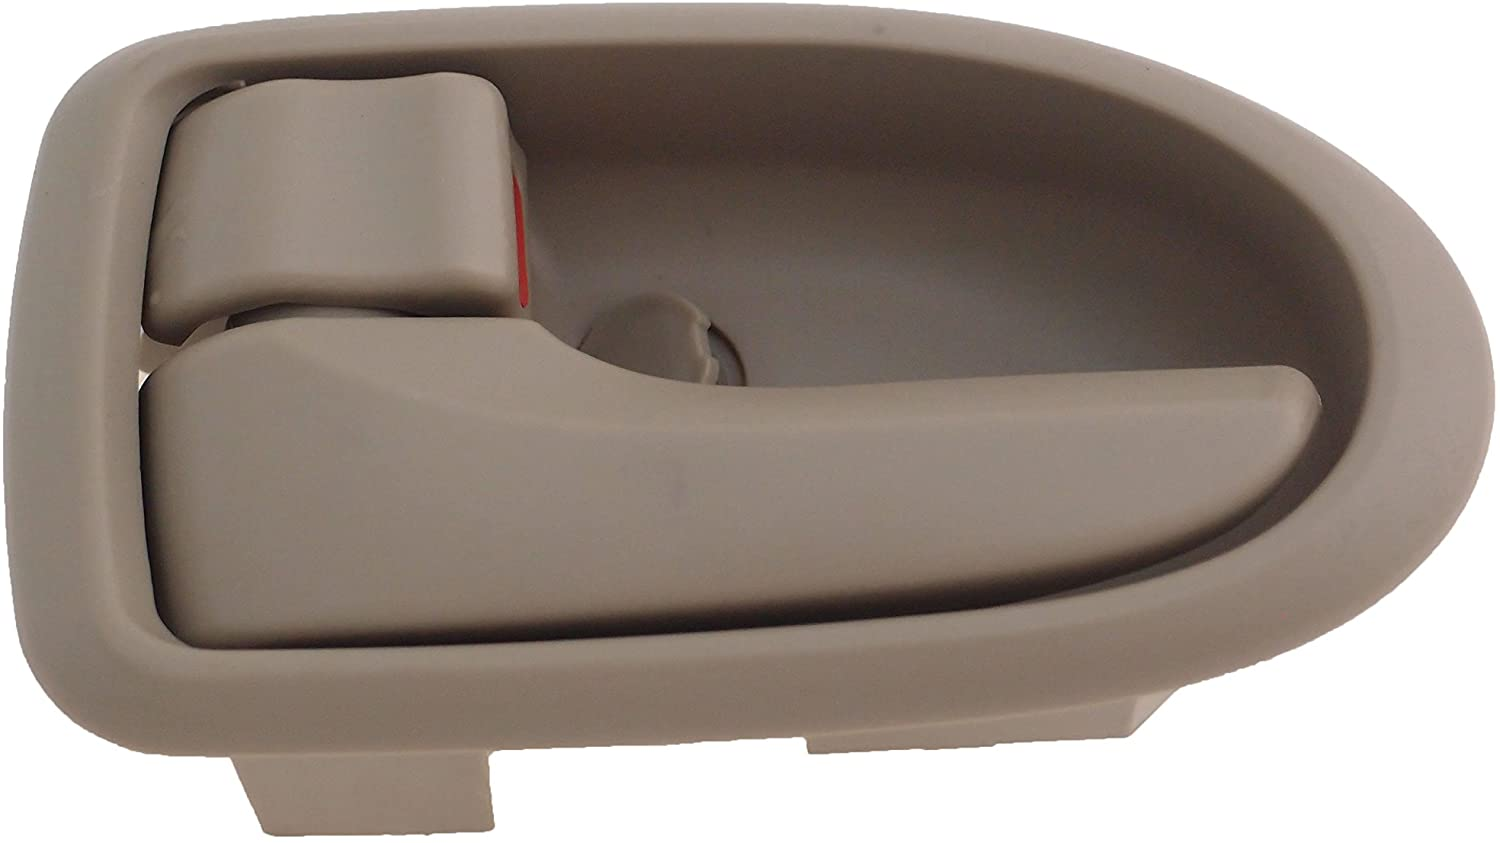 ACK Automotive Mazda MPV Door Handle Replaces Oem: LC6359330C80